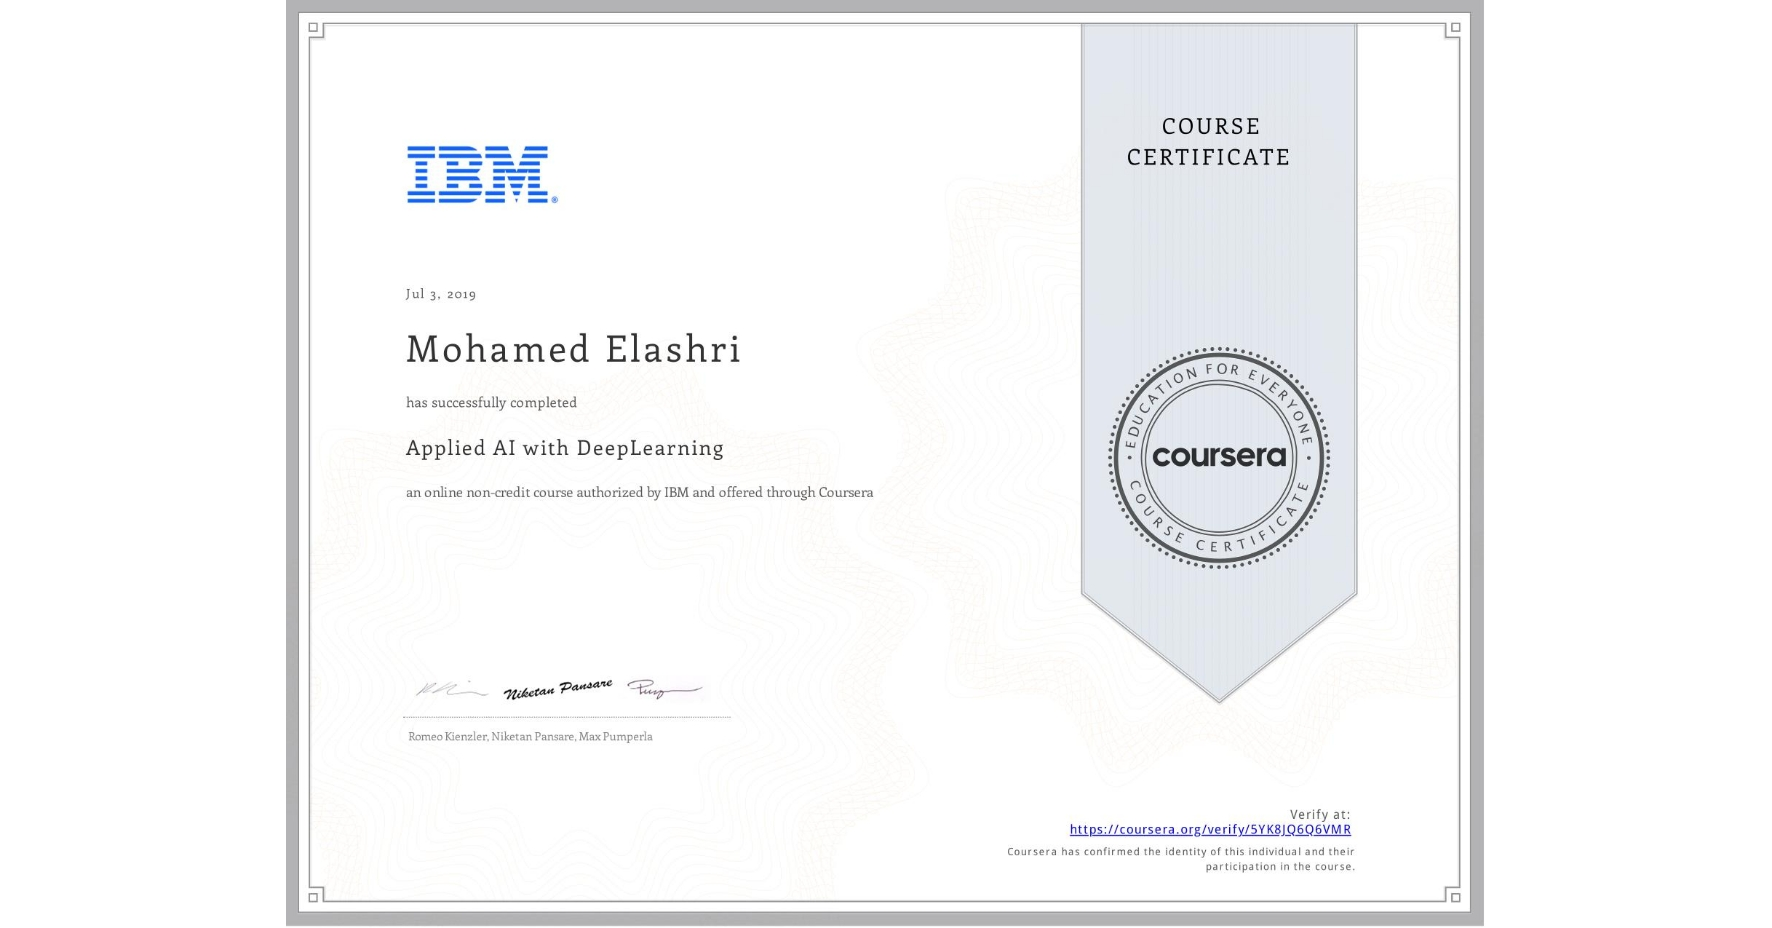 View certificate for Mohamed Elashri, Applied AI with DeepLearning, an online non-credit course authorized by IBM and offered through Coursera